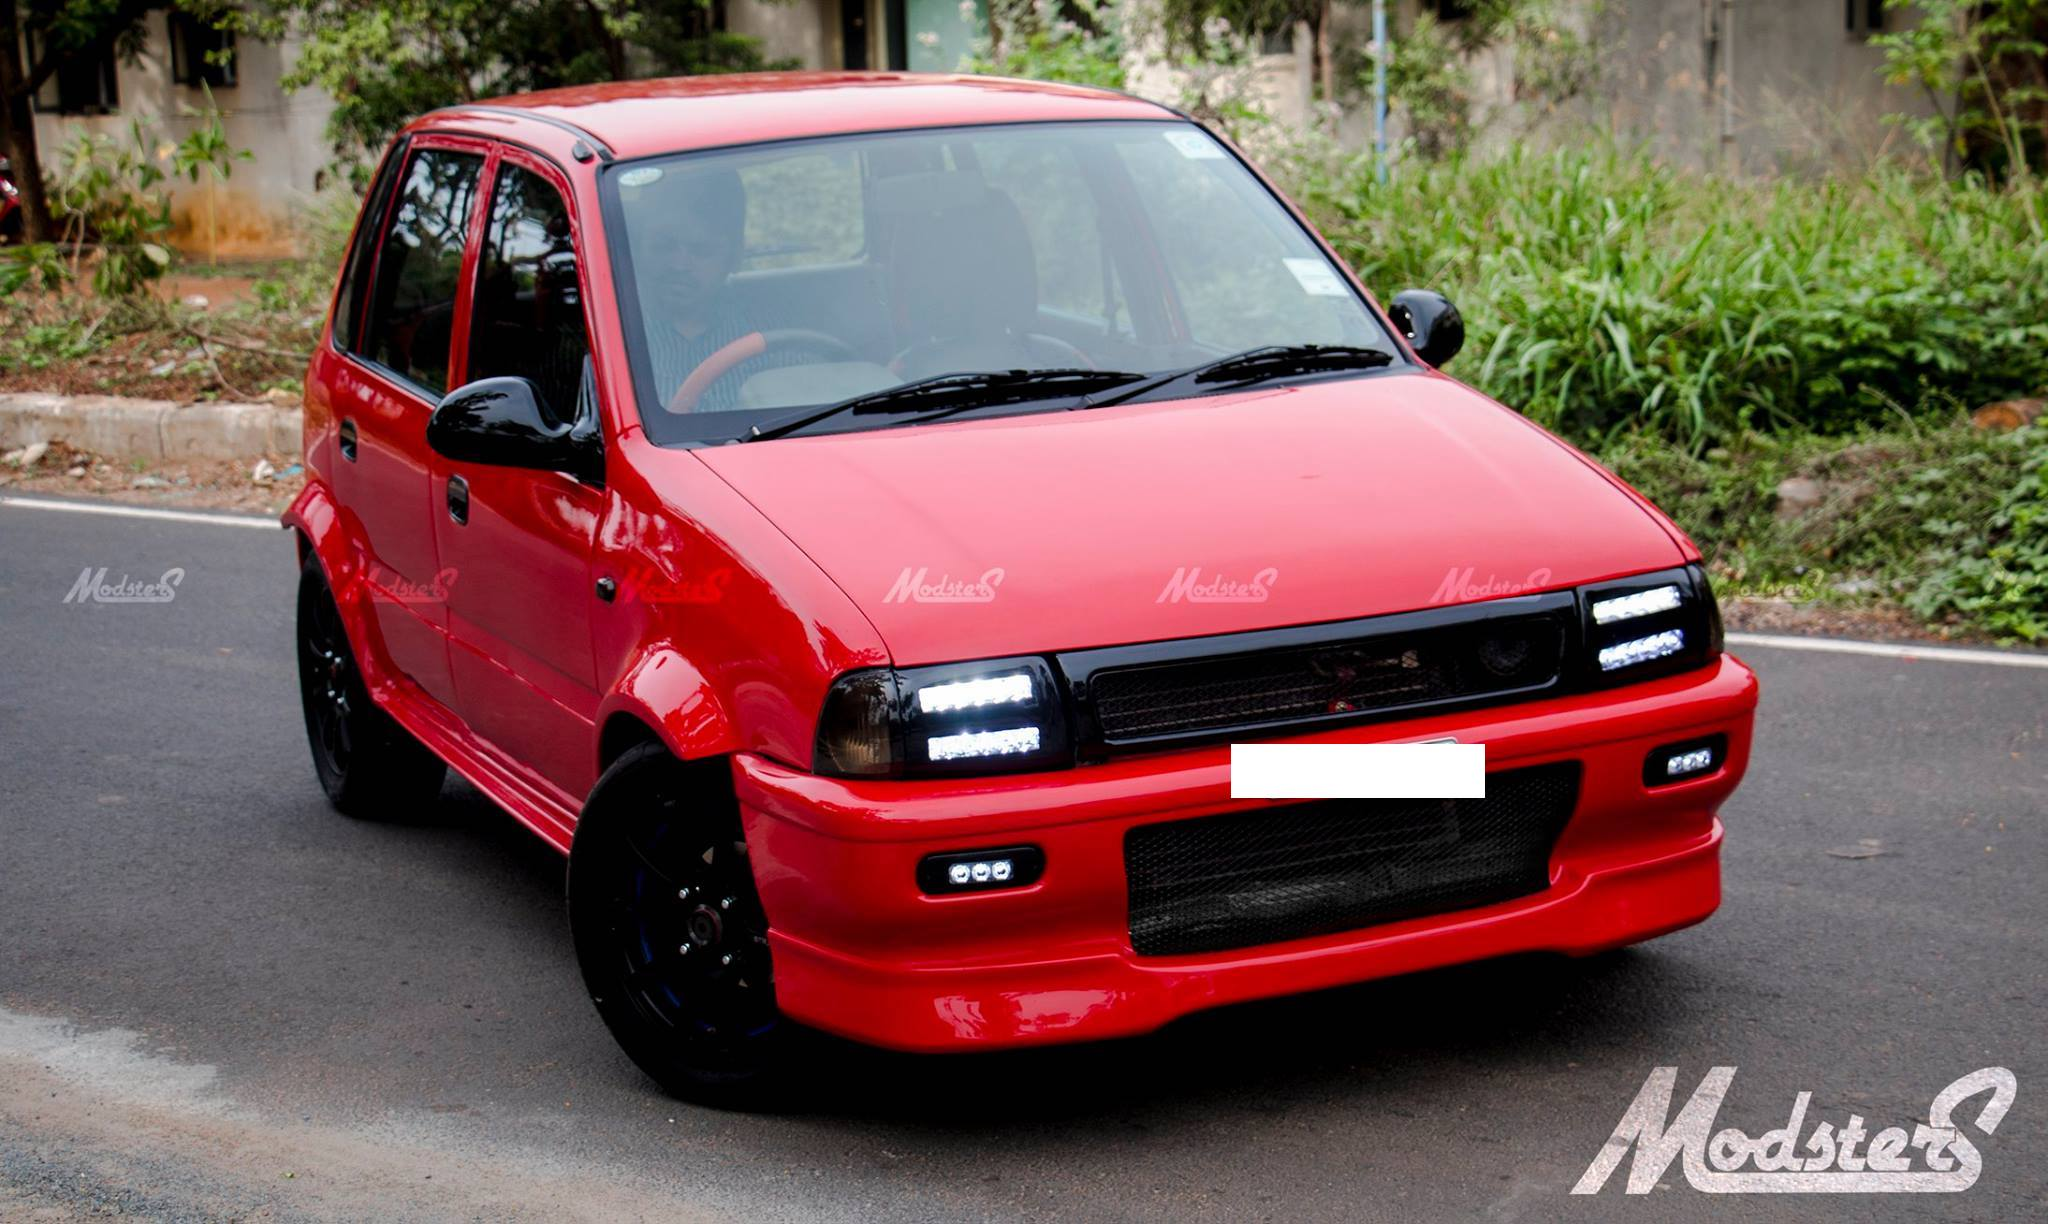 Maruti Zen Project 'POCKET ROCKET' by Modsters Automotive